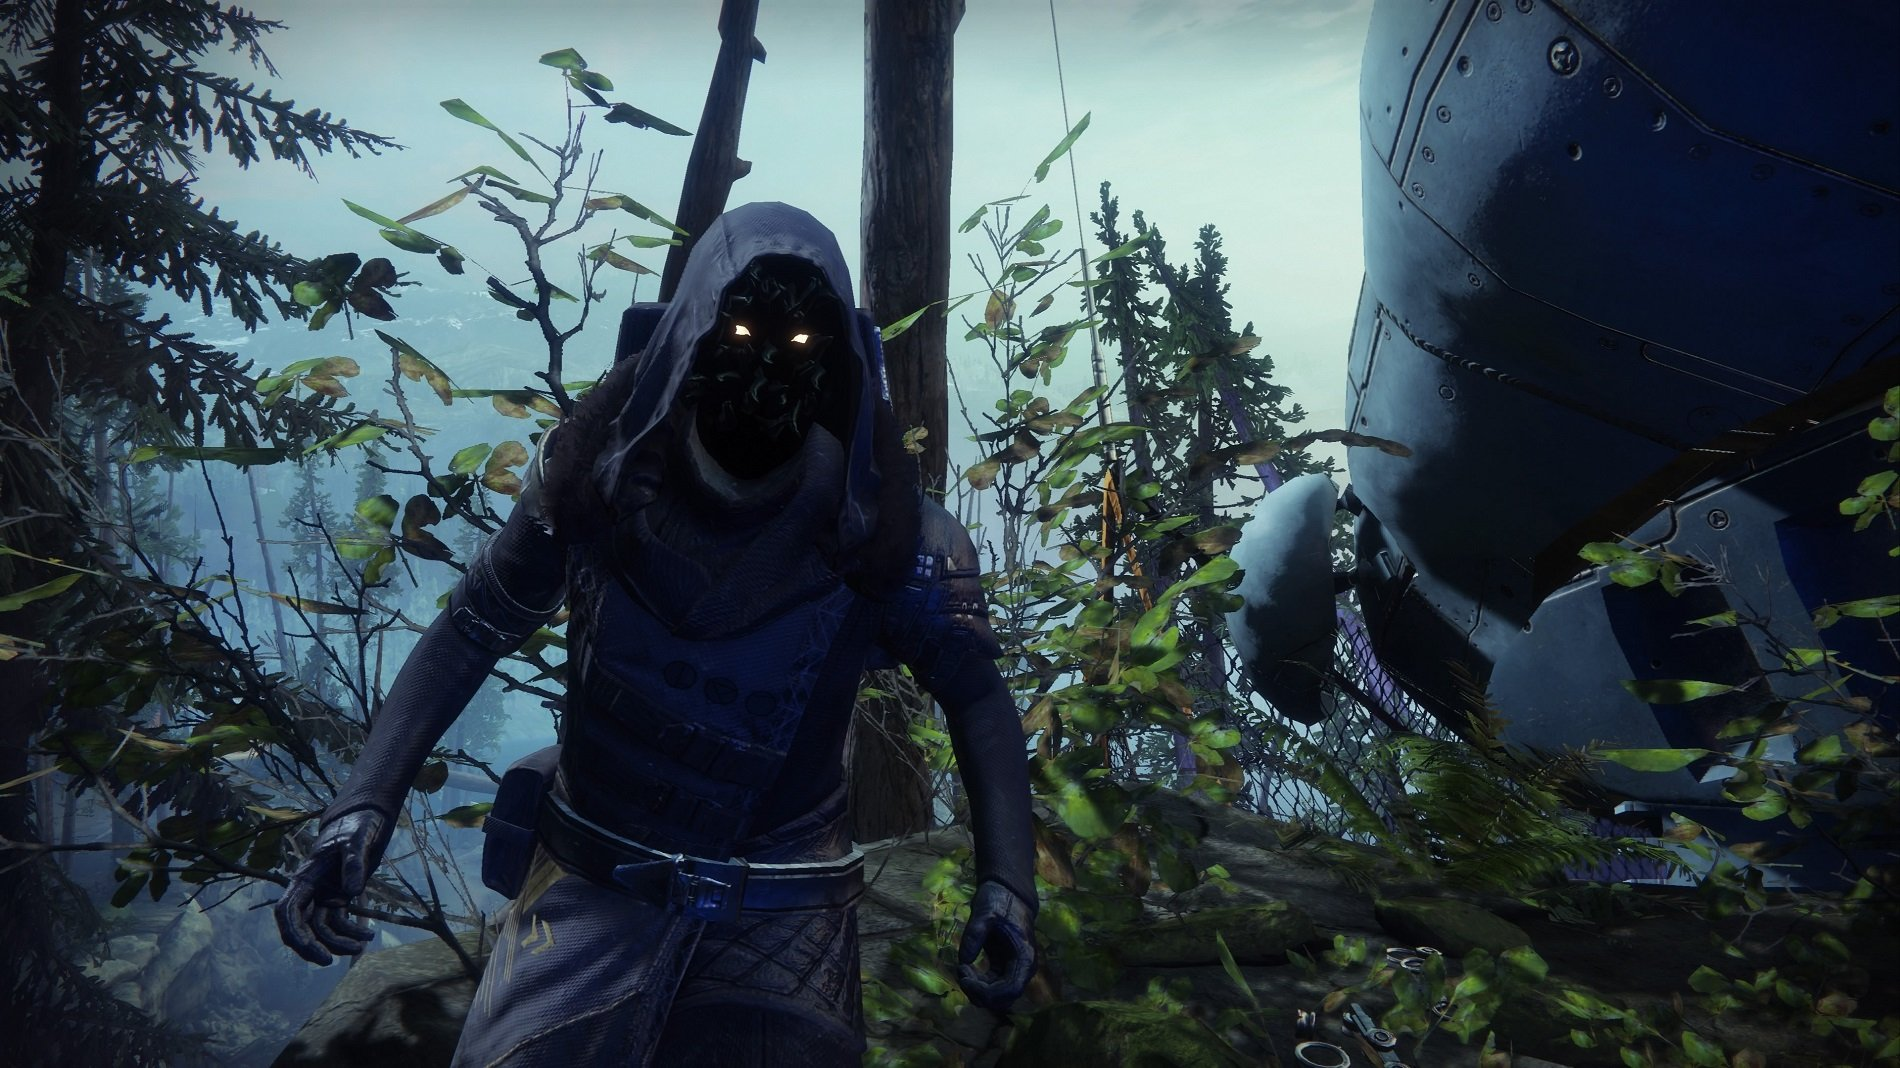 Where to find Xur in Destiny 2 - April 10, 2020